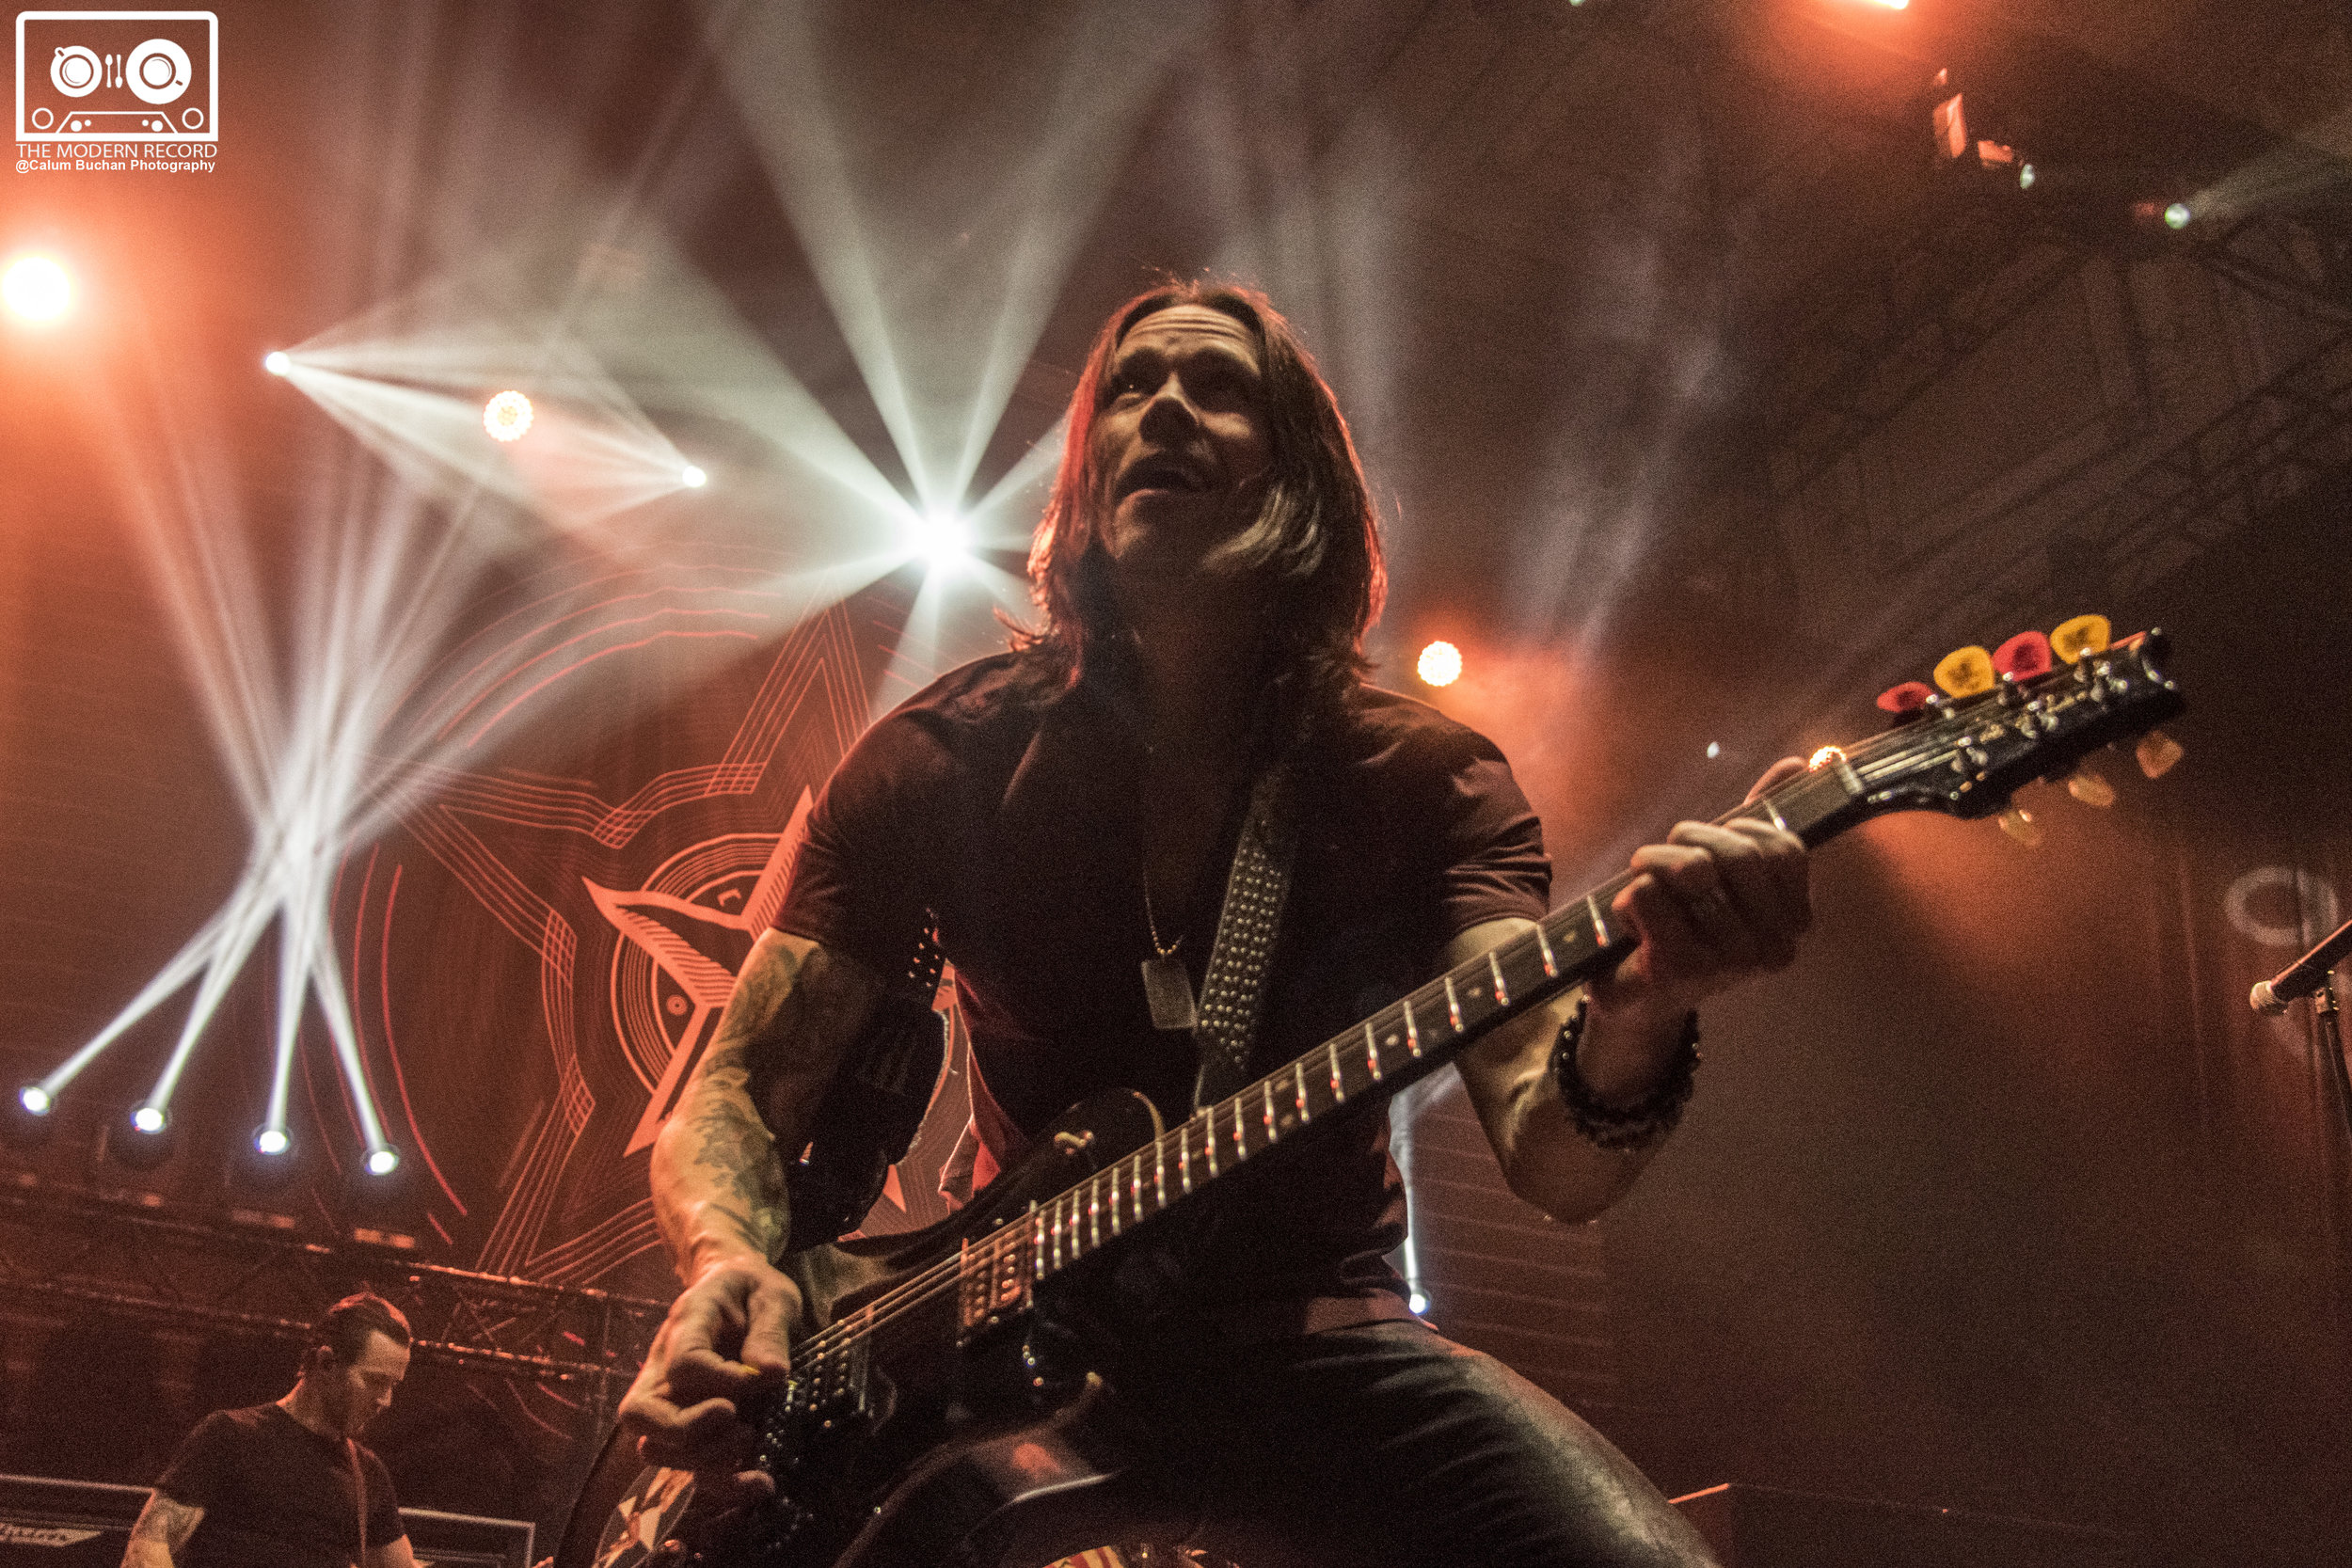 ALTER BRIDGE PLAYING SOLD OUT SHOW AT EDINBURGH'S USHER HALL - 05/10/2017  PICTURE BY: CALUM BUCHAN PHOTOGRAPHY